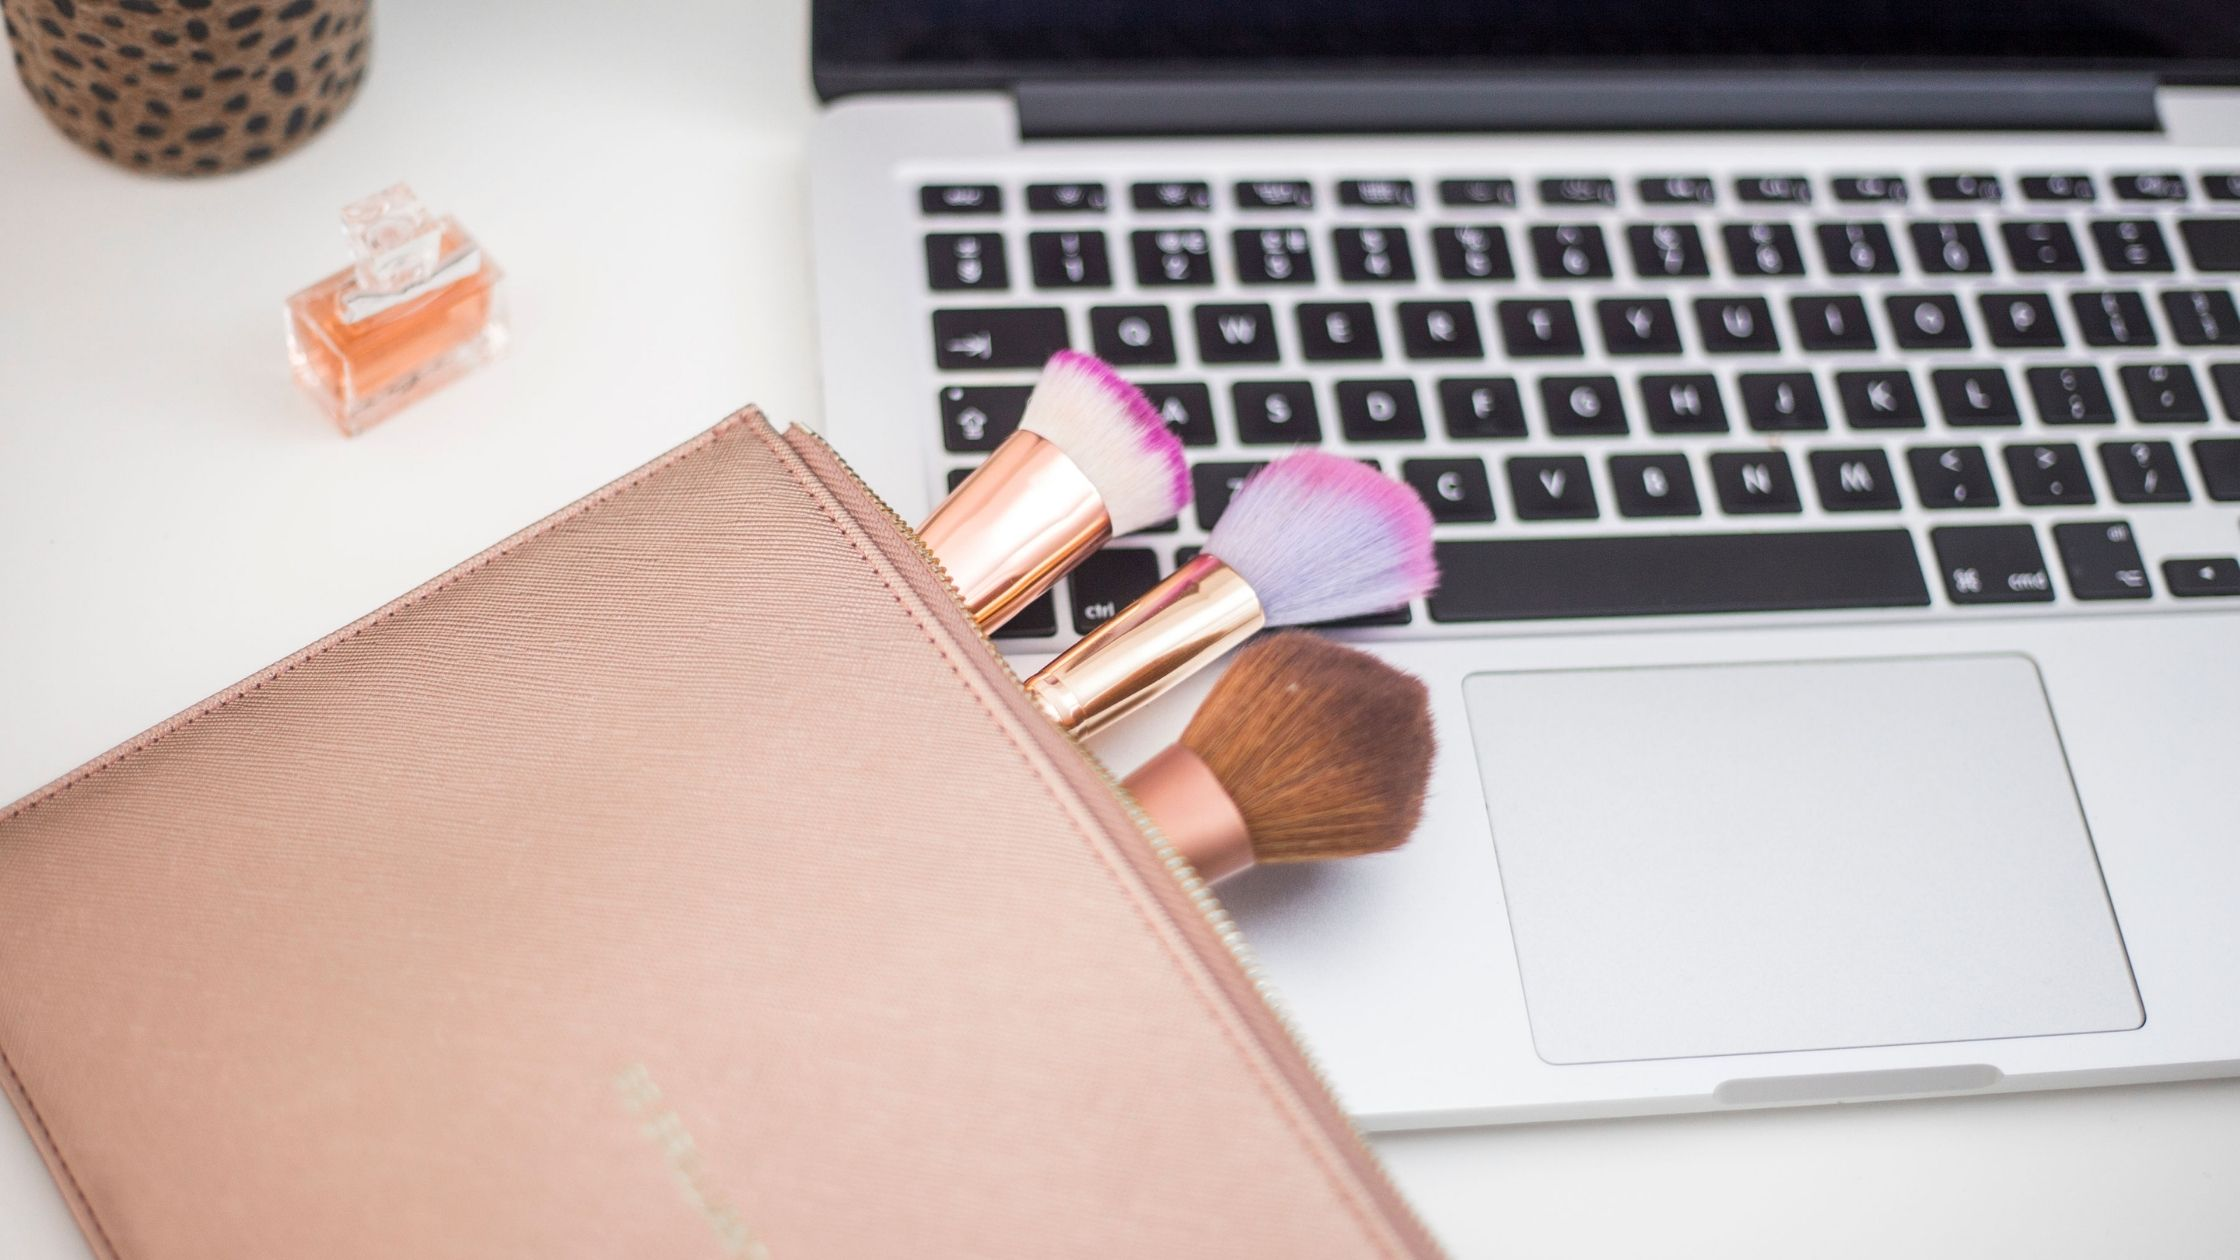 makeup brushes in a pink makeup bag lying on a laptop keyboard